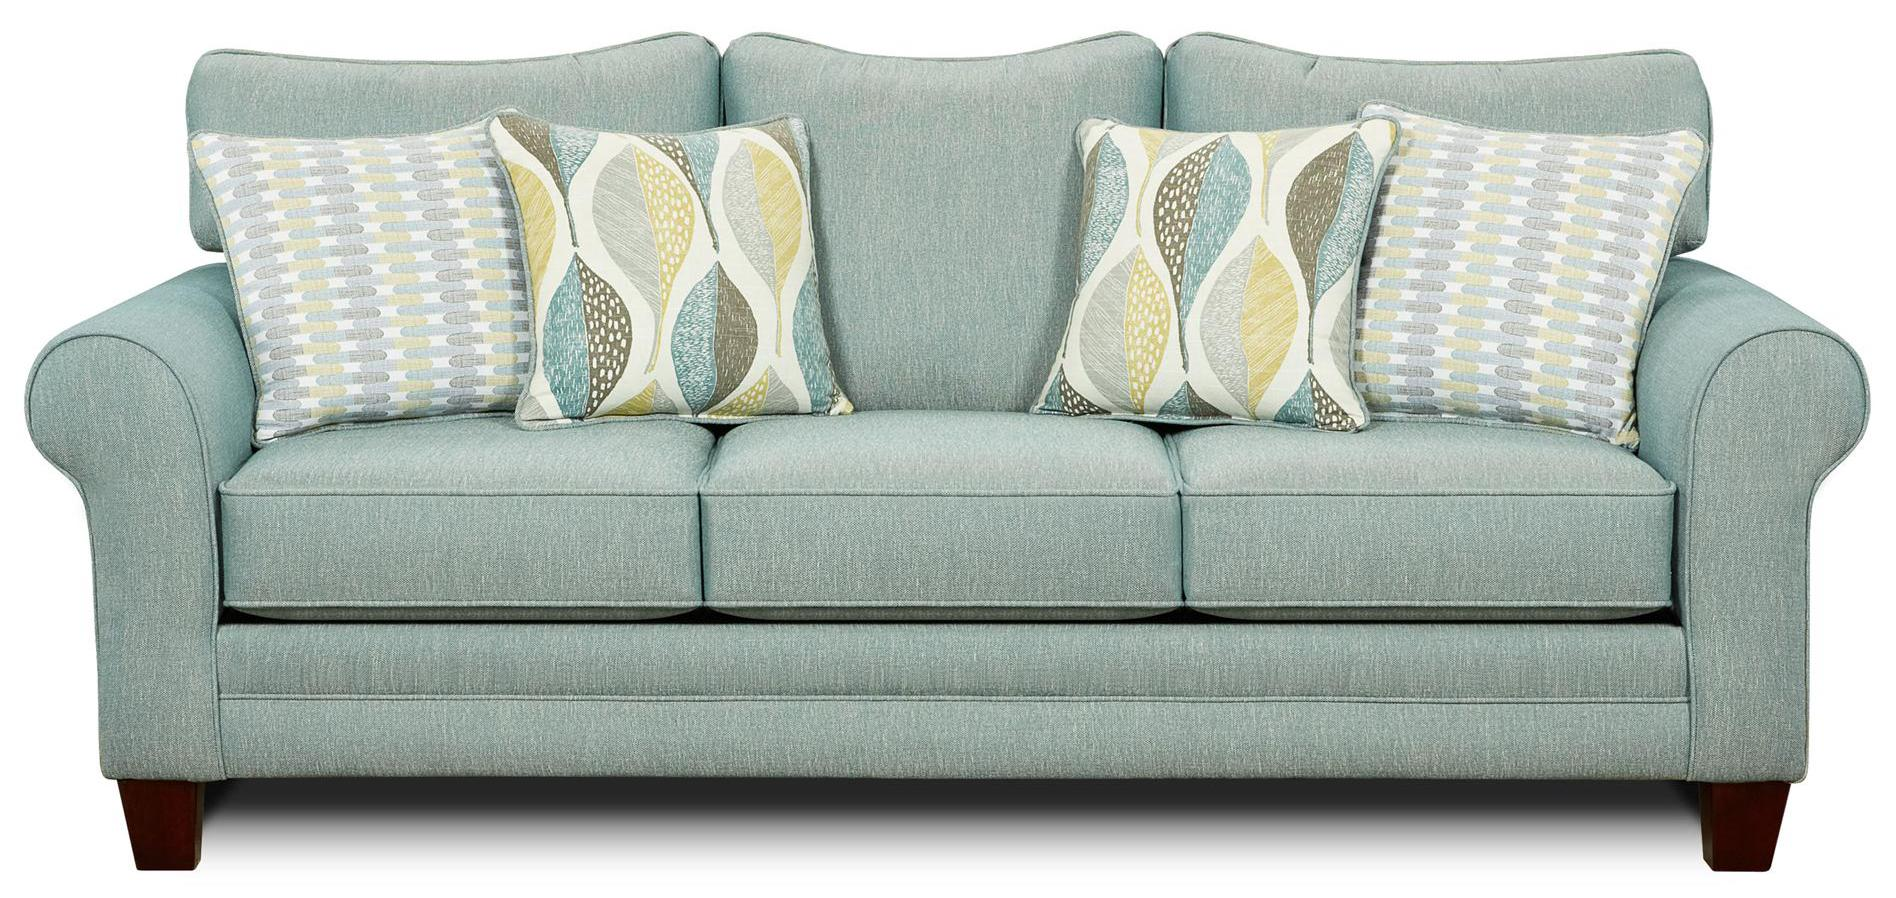 Fusion Furniture 1140 Sofa - Item Number: 1140Decade Aqua